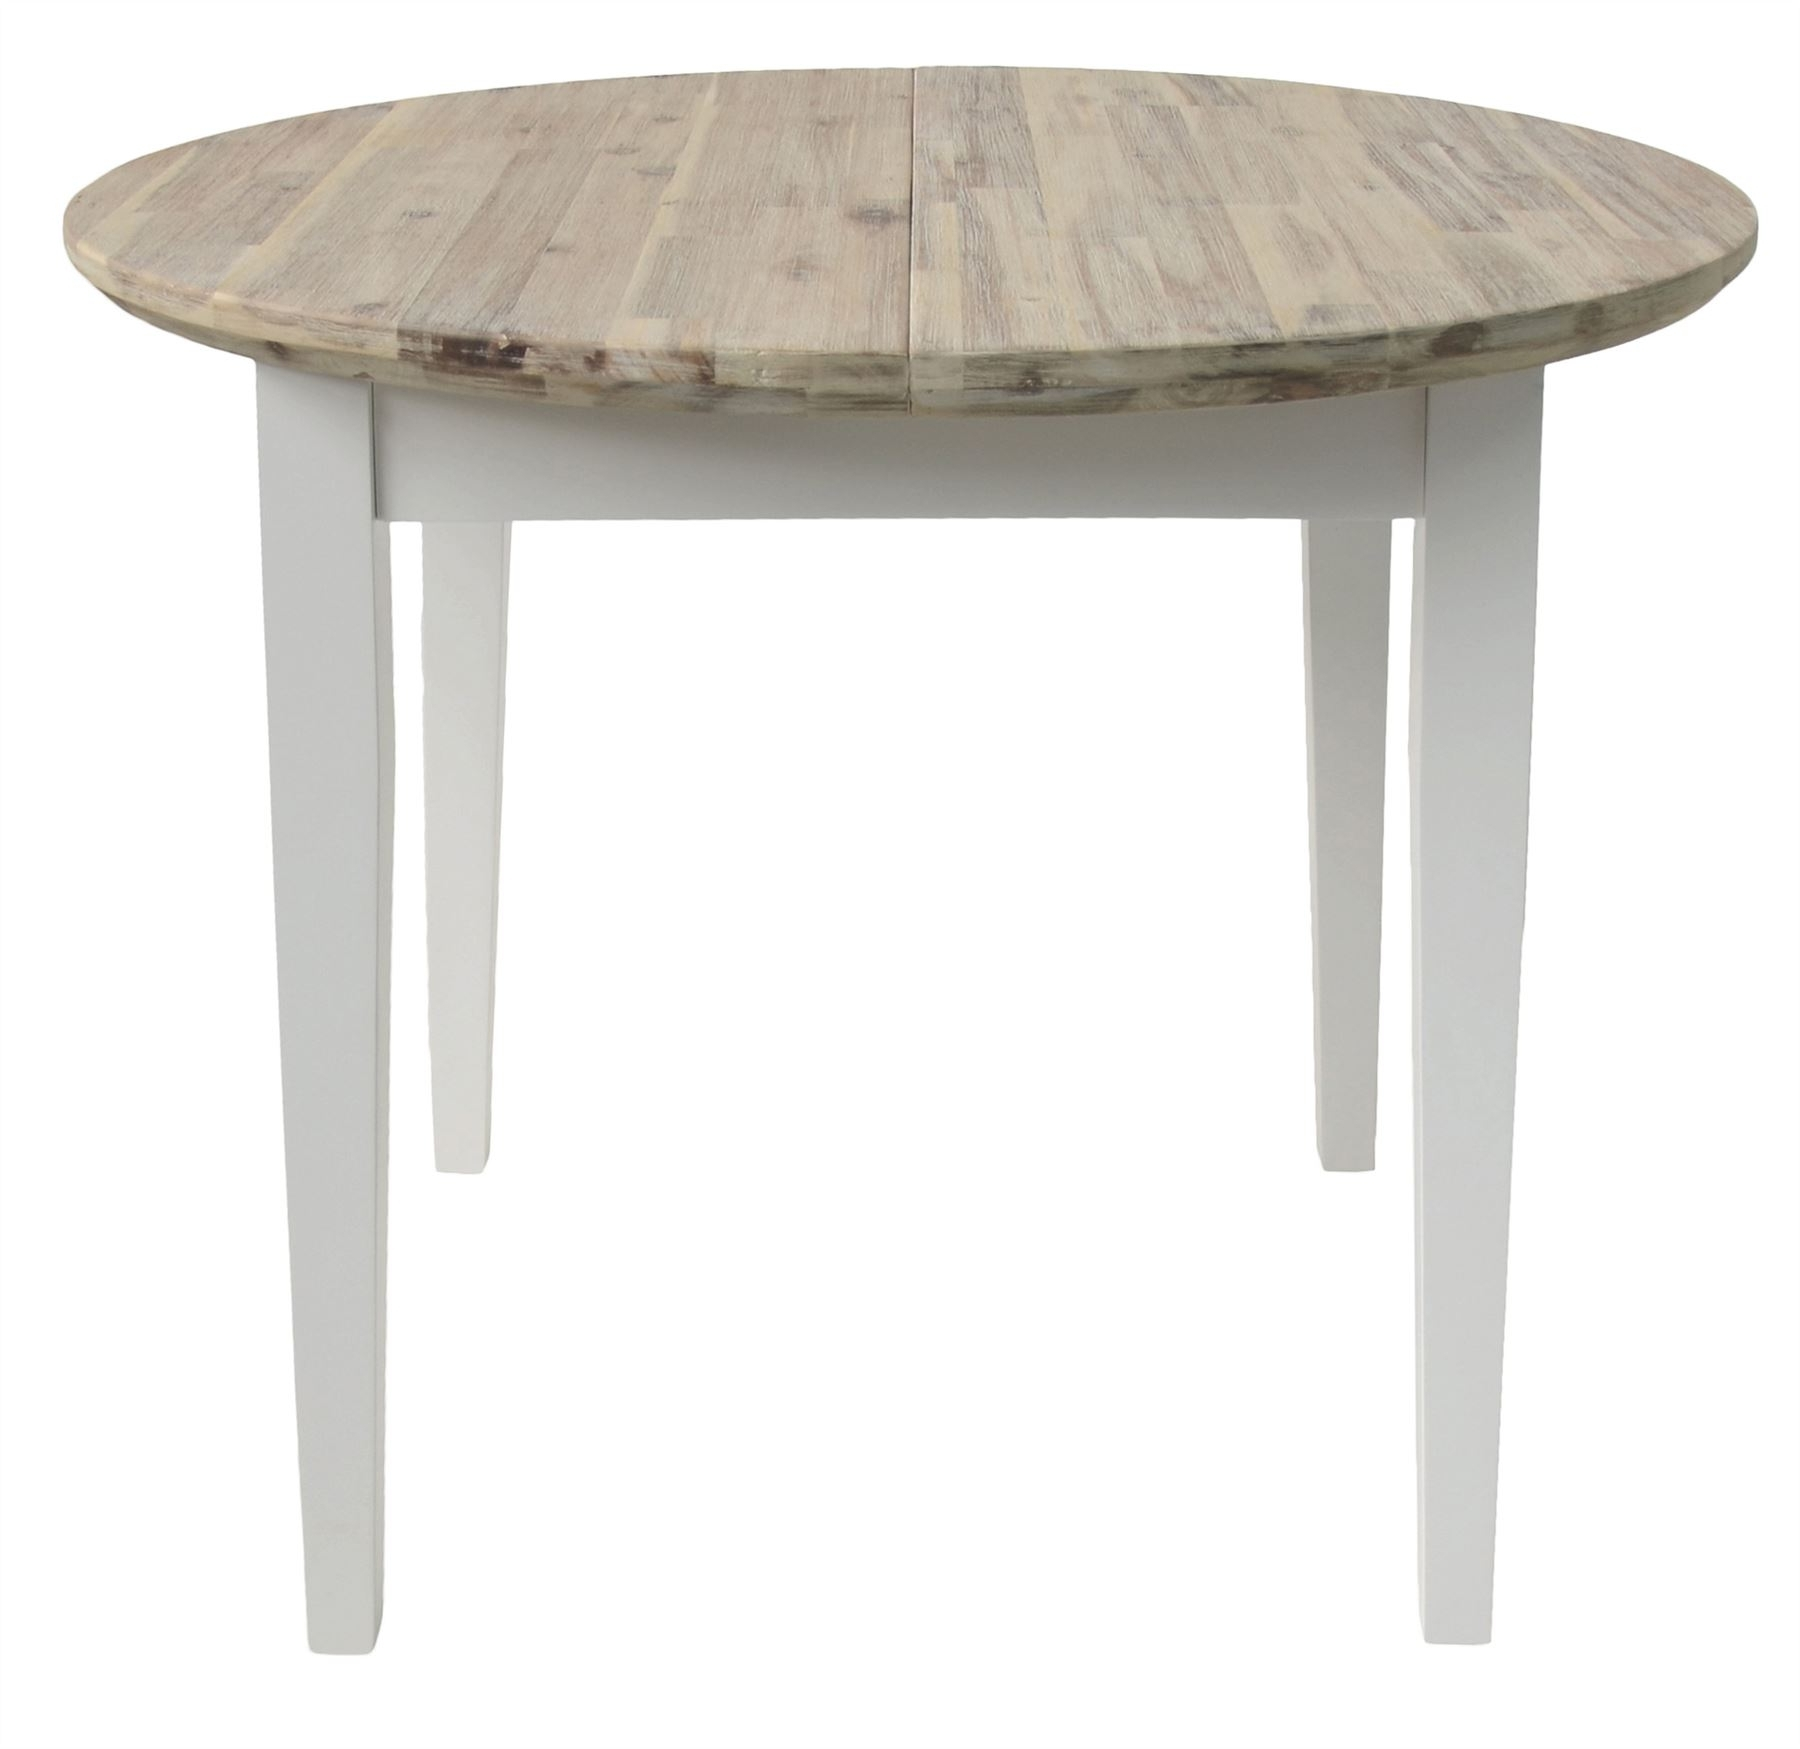 Recent Florence Round Extending Table 92 117Cm, Kitchen Dining Table Inside Extended Round Dining Tables (View 21 of 25)